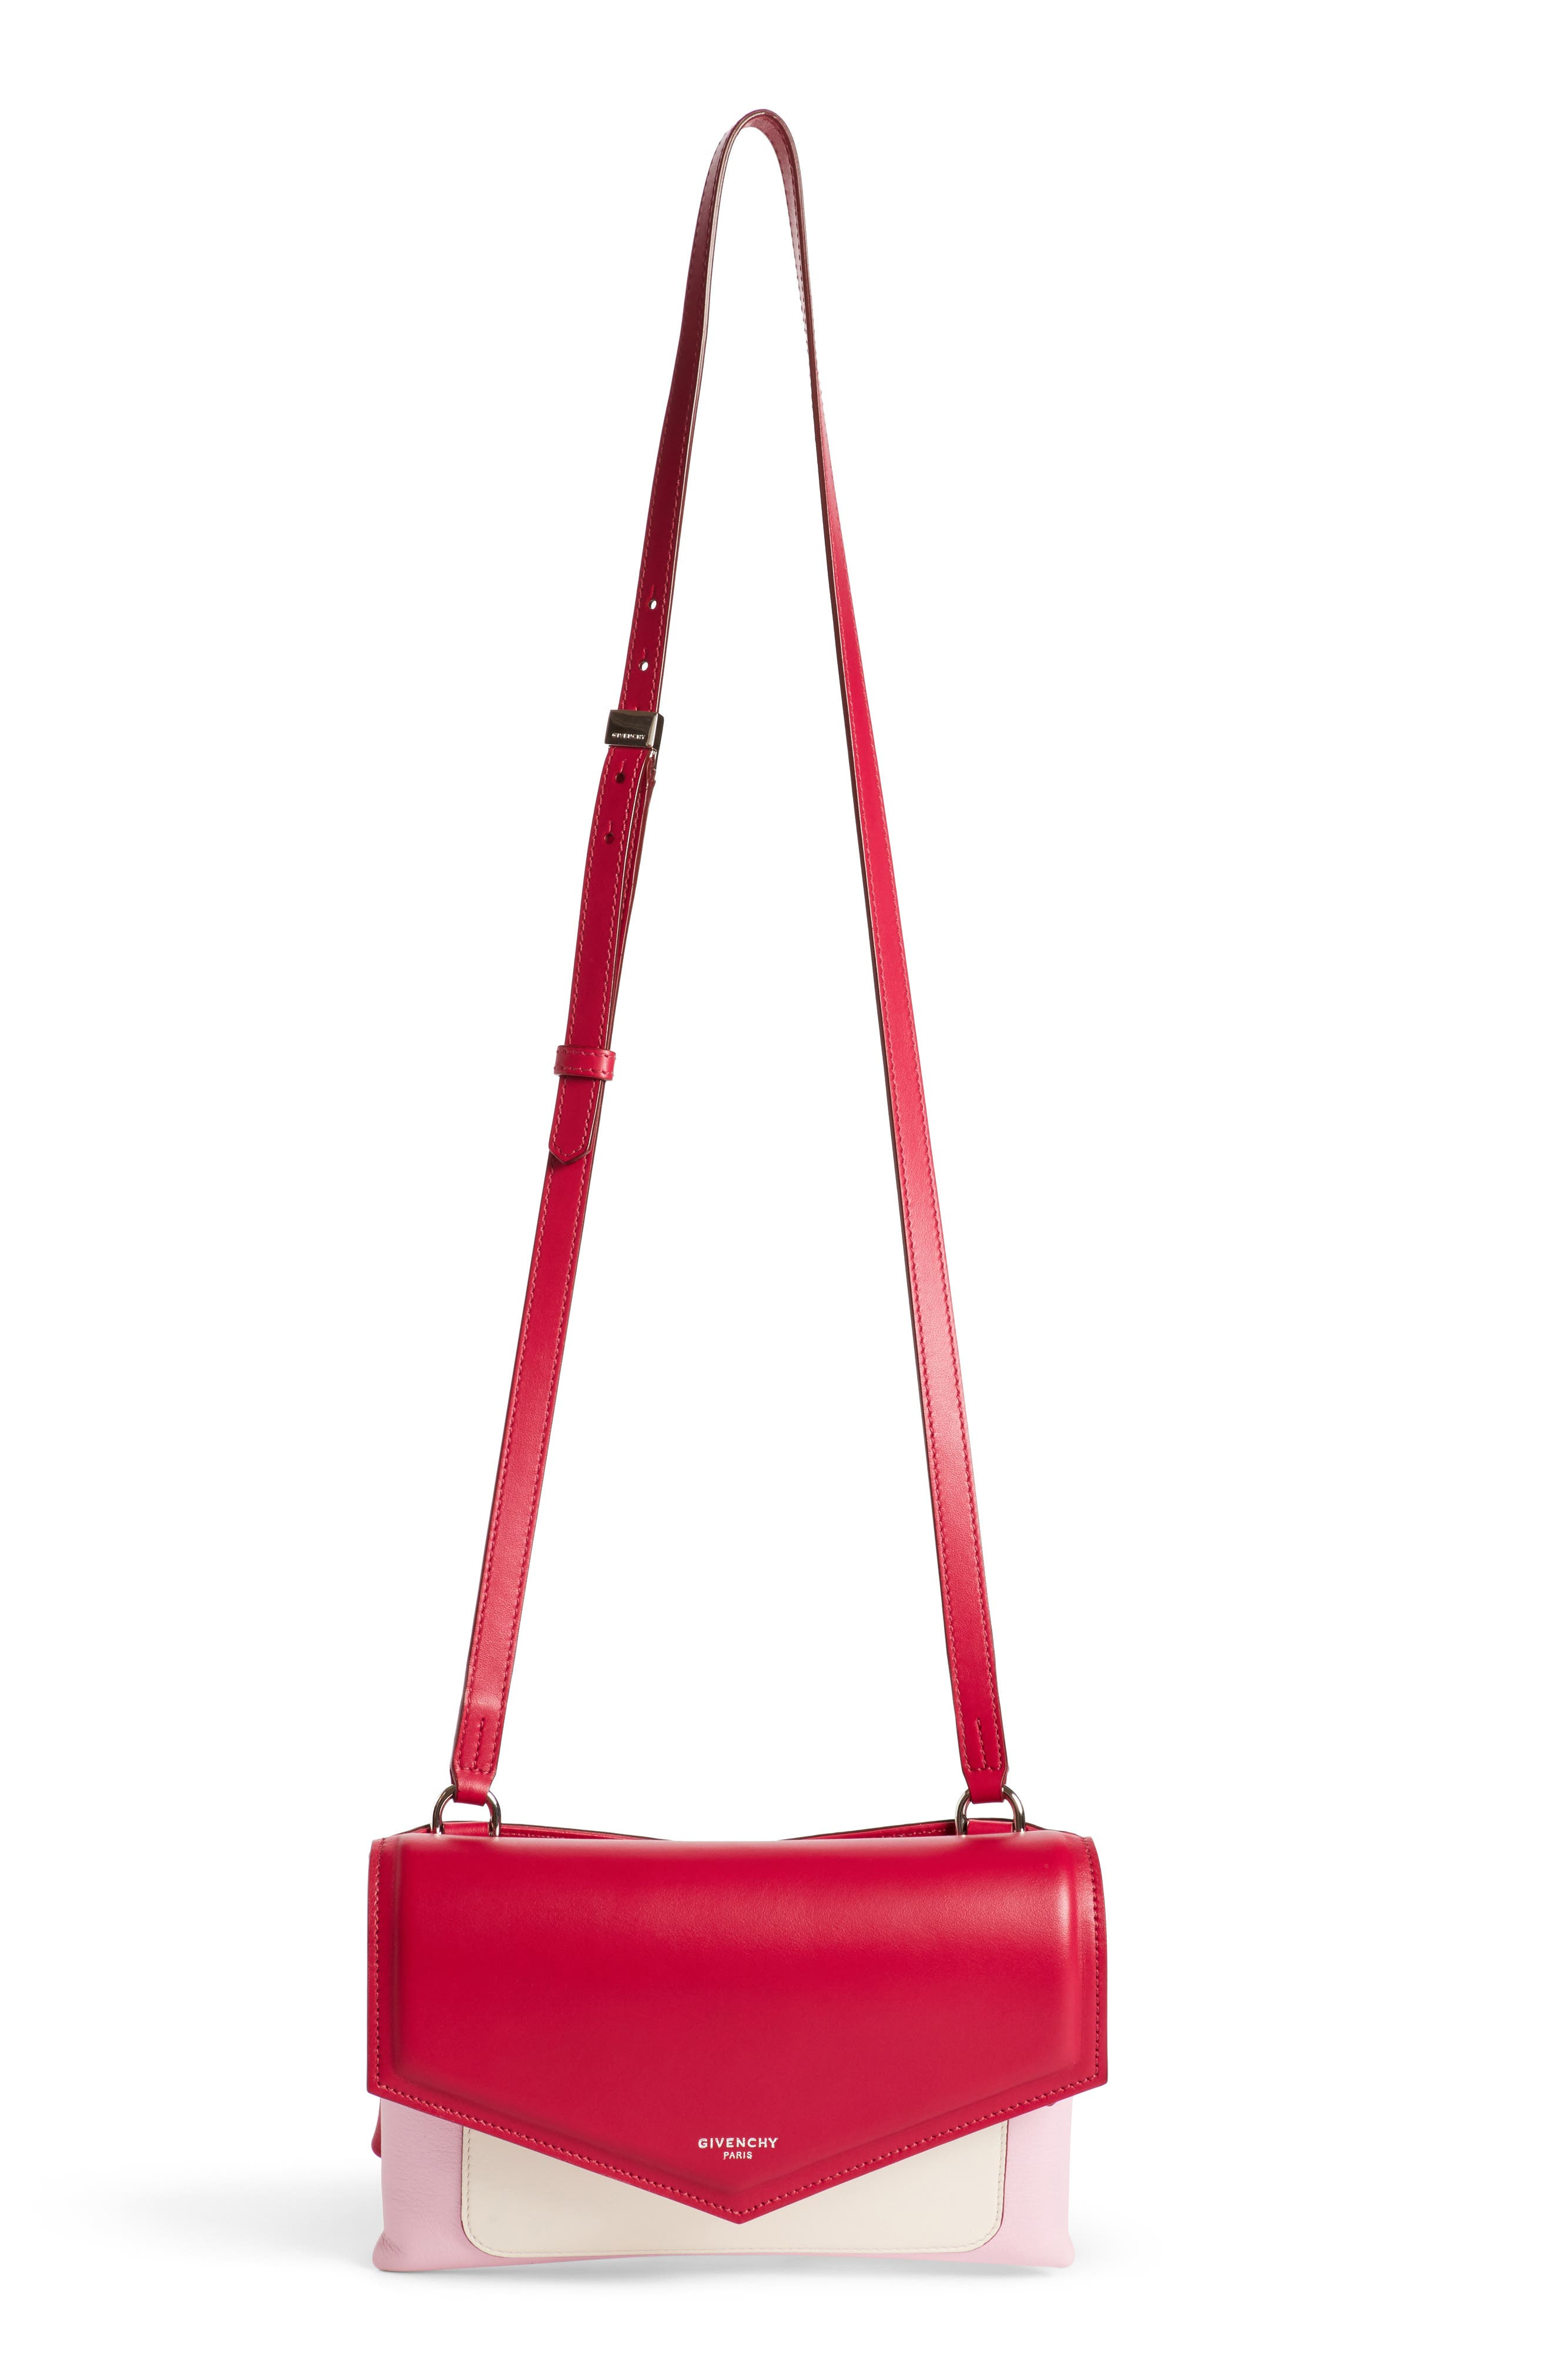 Main Image - Givenchy Duetto Tricolor Leather Flap Crossbody Bag